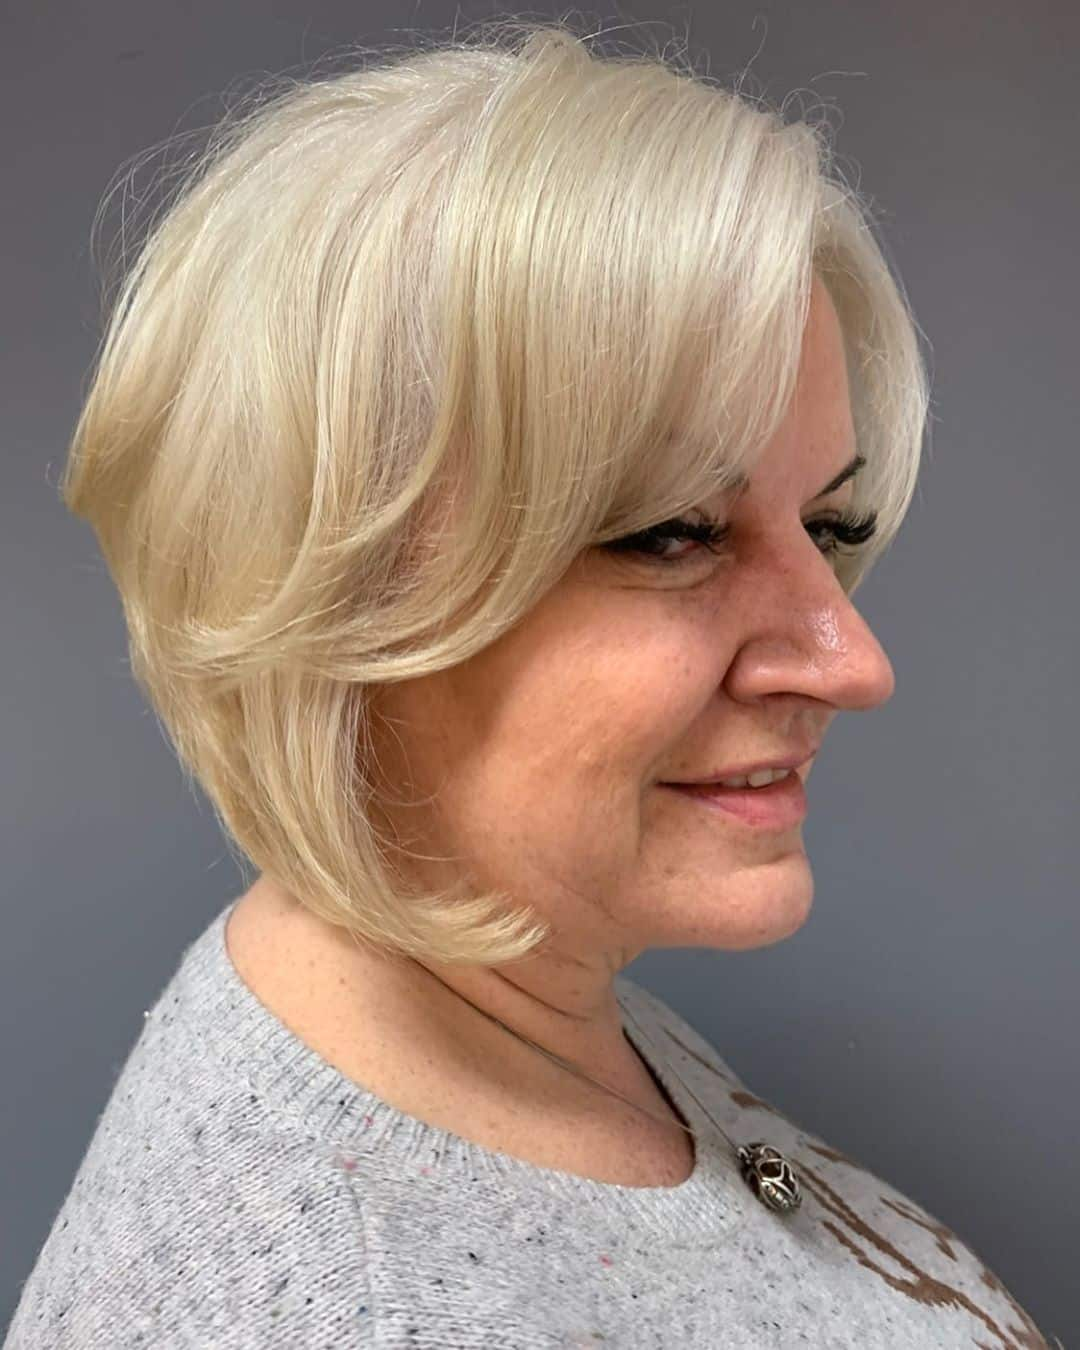 15 Slimming Short Hairstyles for Women Over 50 with Round Faces